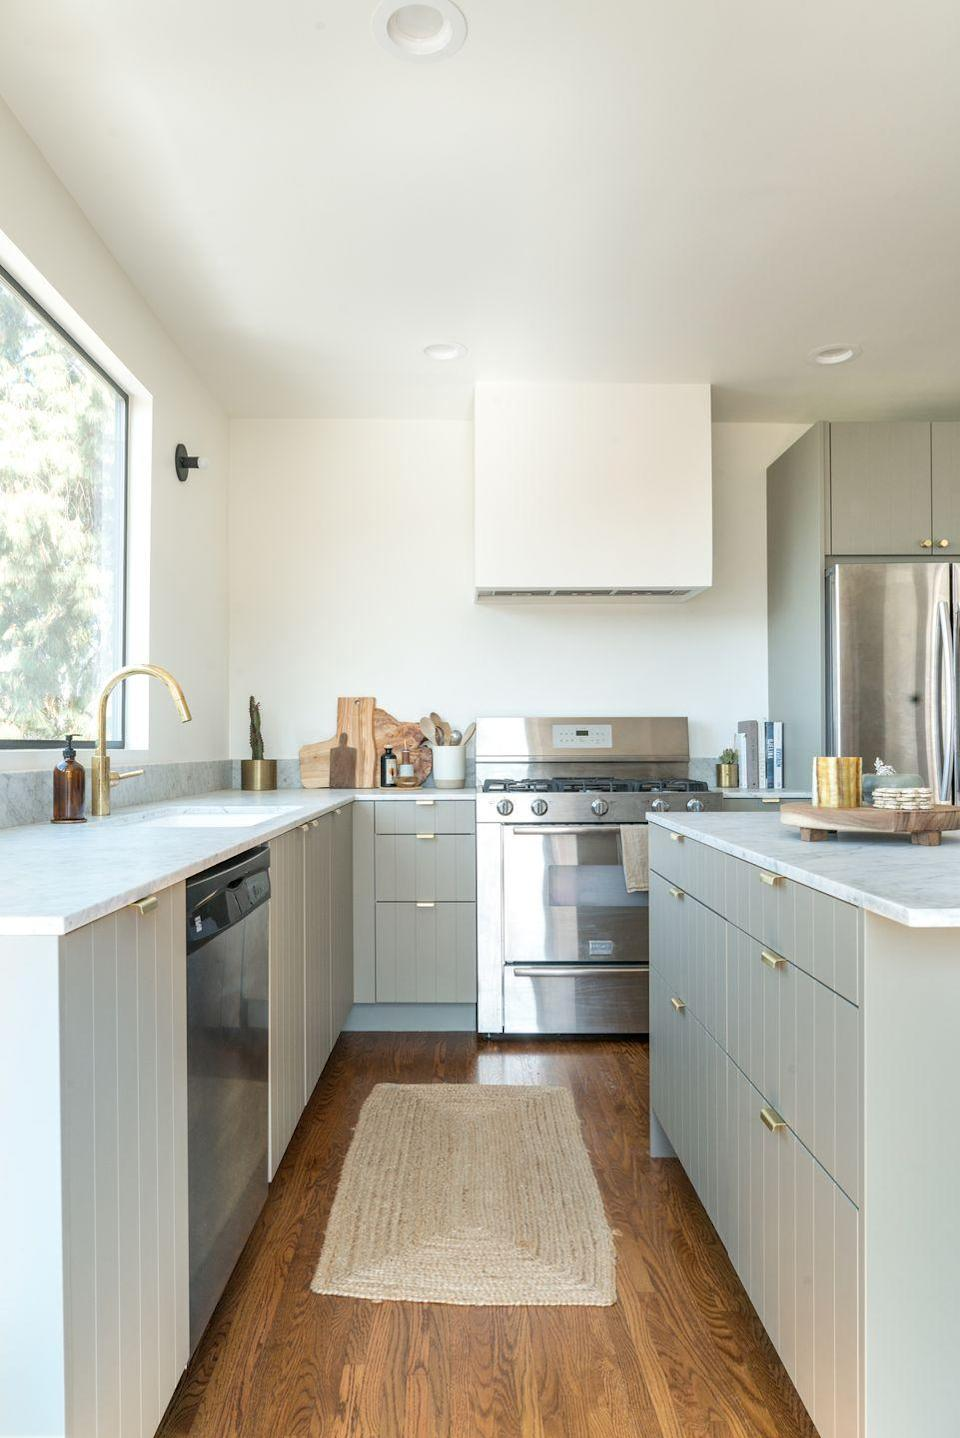 "<p>When Lindsay Marcus of Resident LA decided to <a href=""https://www.housebeautiful.com/design-inspiration/home-makeovers/a23508179/lindsay-marcus-kitchen-makeover/"" rel=""nofollow noopener"" target=""_blank"" data-ylk=""slk:renovate her 1927 California Hills home"" class=""link rapid-noclick-resp"">renovate her 1927 California Hills home</a>, extra-large windows were added to accentuate the view, with IKEA cabinetry and Semihandmade fronts making up the new kitchen. By foregoing upper cabinetry and using a barely-there gray-green tint on the lowers, Marcus was able to give the room a wide-open feel that wouldn't obstruct the view. </p>"